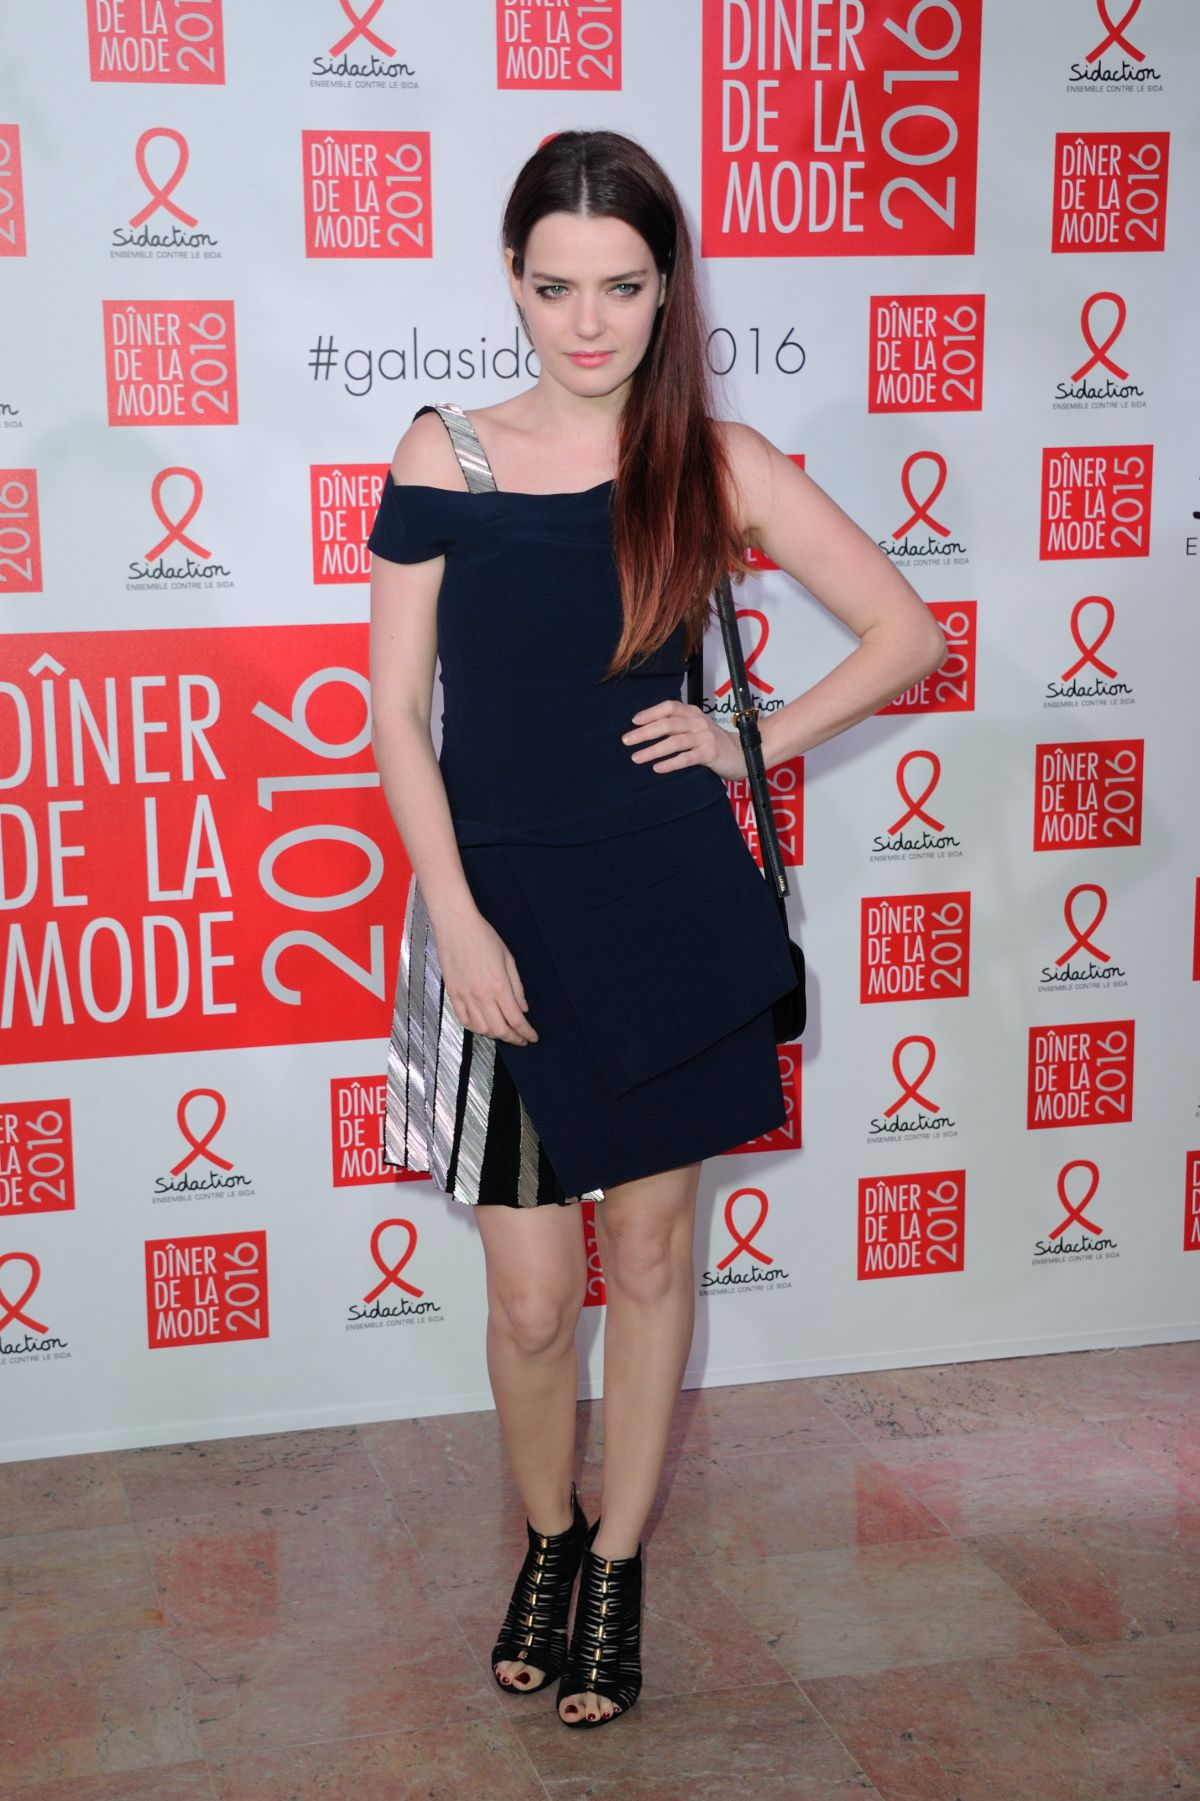 ROXANNE MESQUIDA at Sidaction Gala Dinner 2016 in Paris 01/28/2016